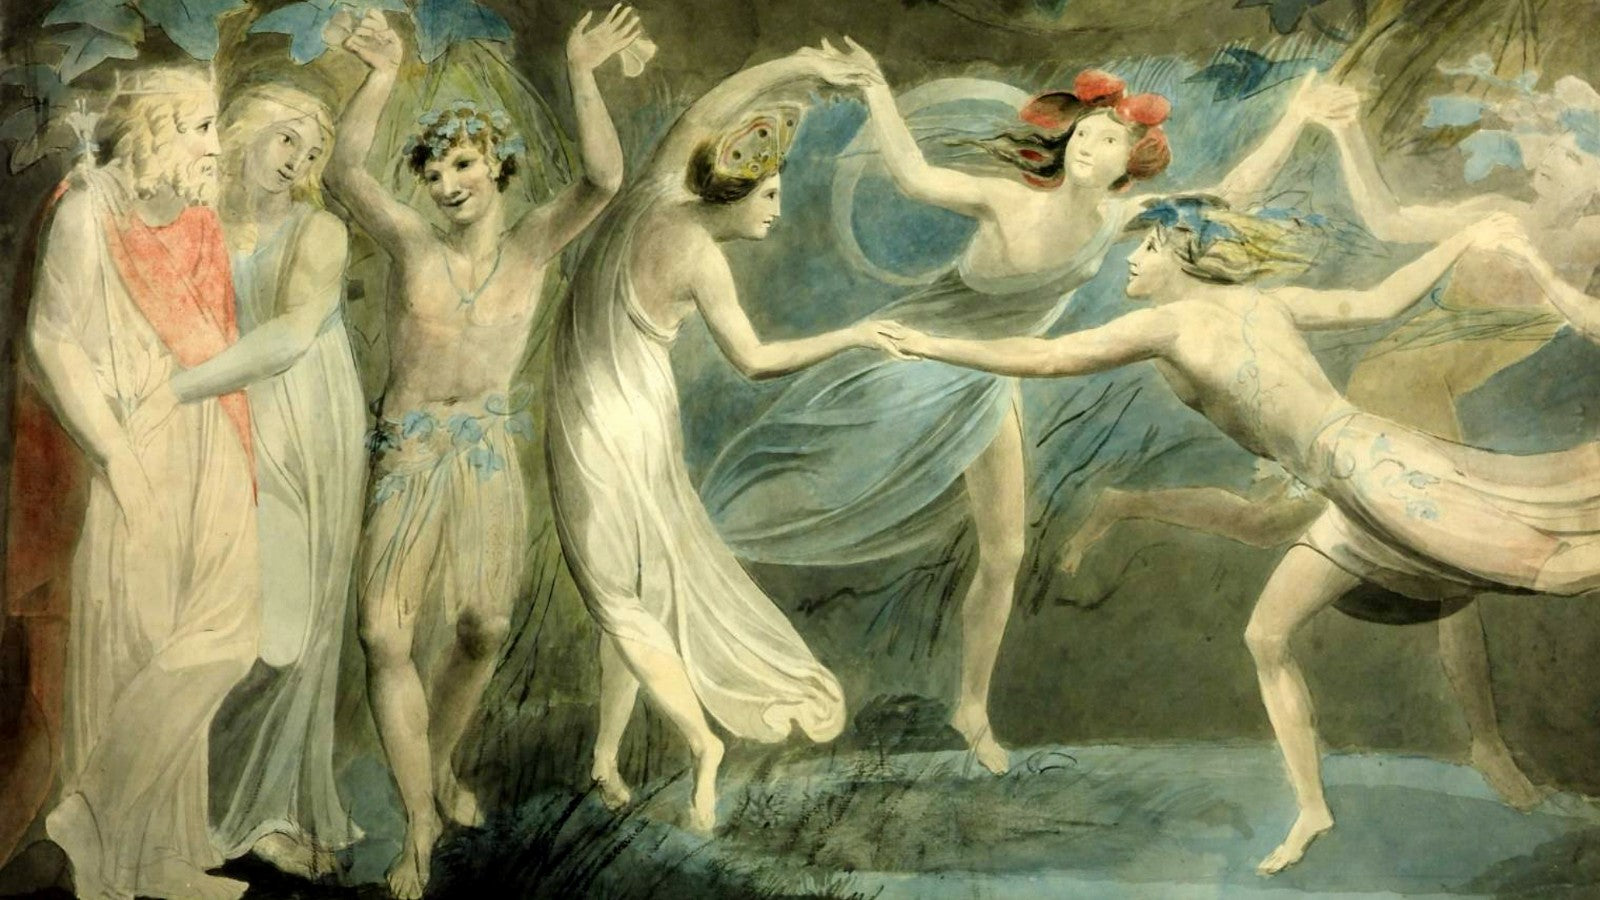 Oberon, Titania and Puck with Fairies Dancing - William Blake (1786)